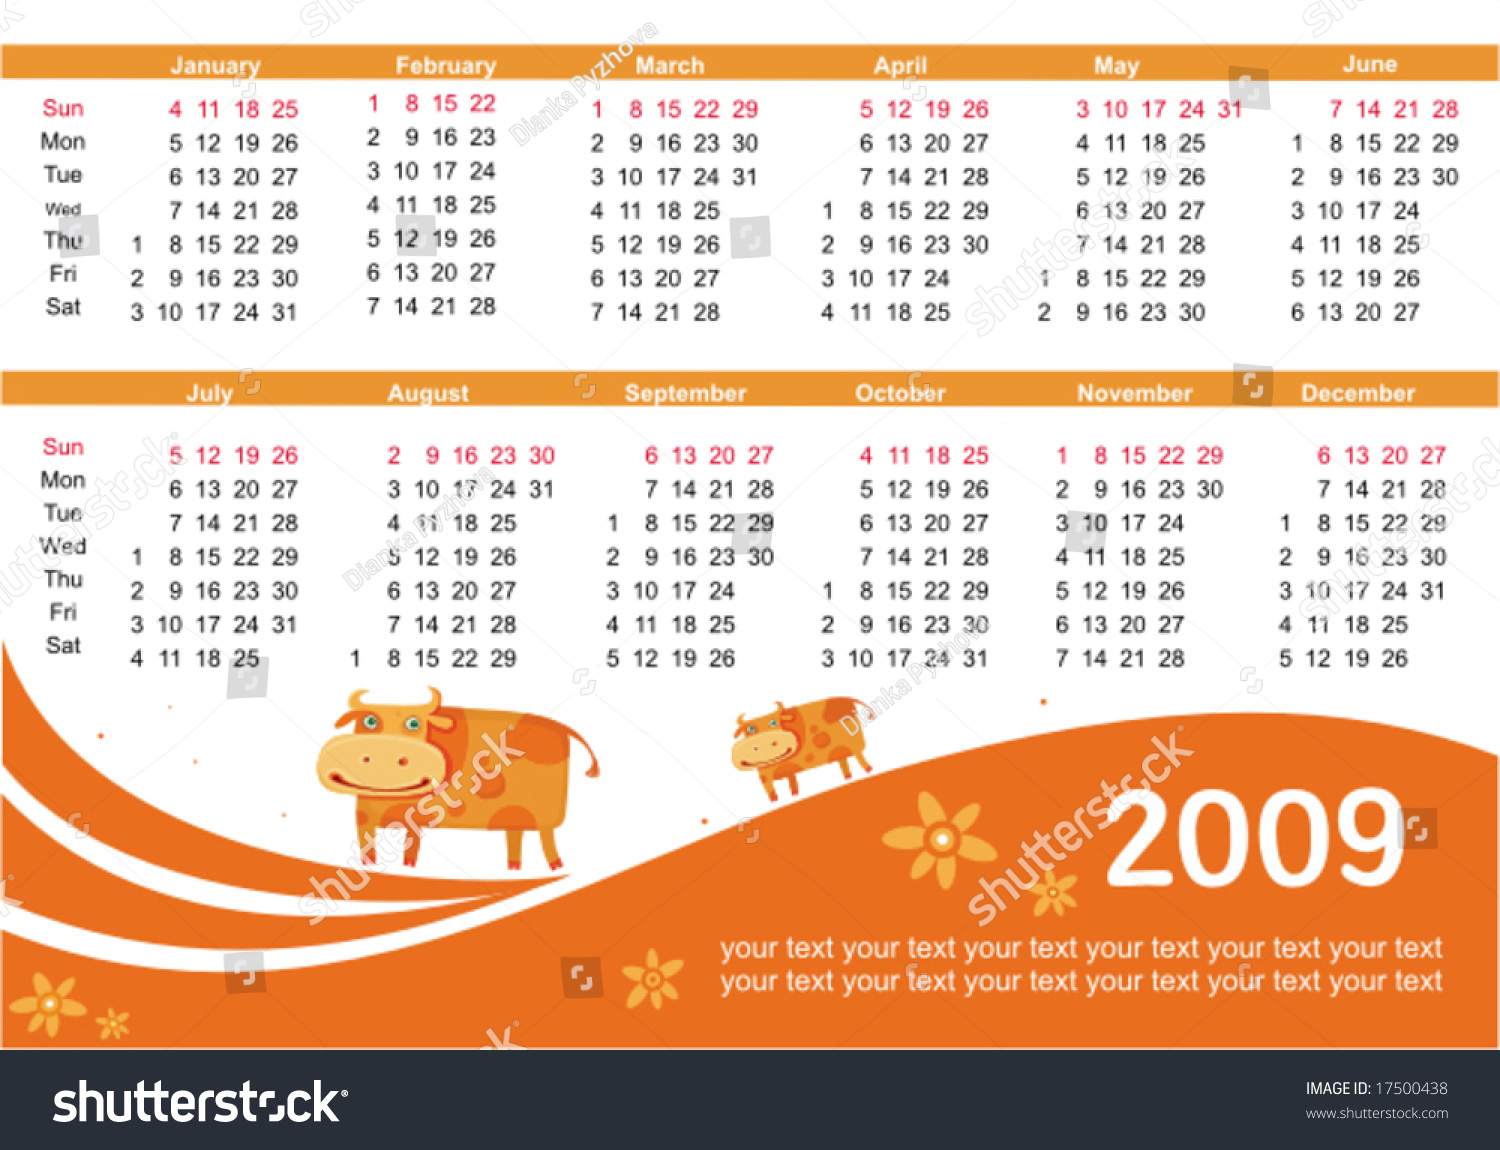 2009 calendar cow symbol 2009 year stock vector 17500438 2009 calendar with cow symbol of 2009 year starts sunday buycottarizona